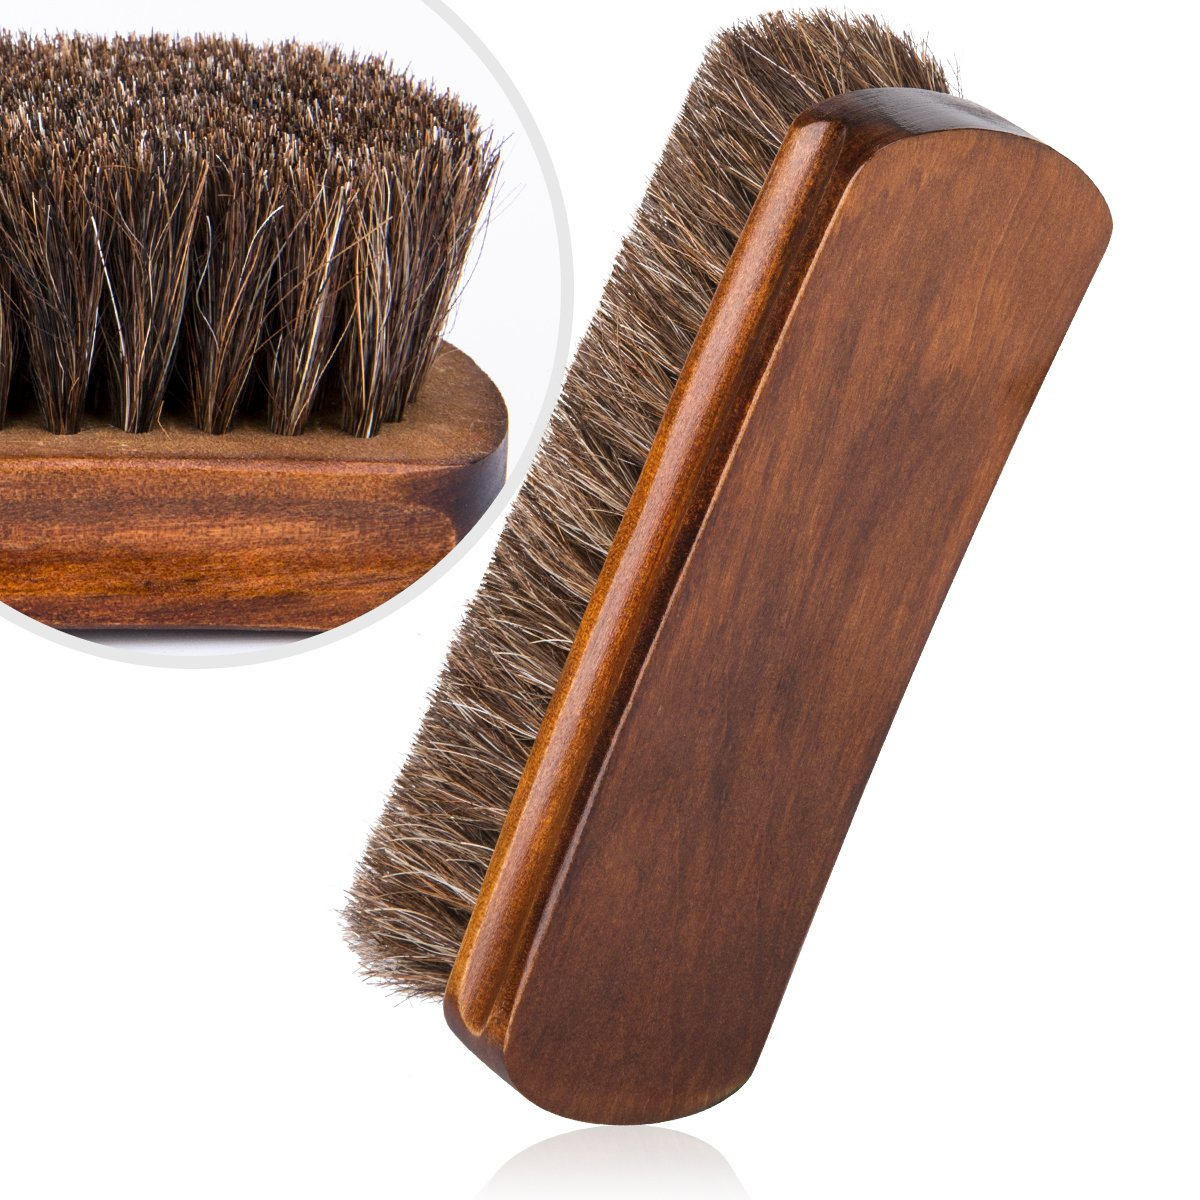 6.7'' Horsehair Shoe Brushes with Horse Hair Bristles for Boots, Shoes & Other Leather Care, 2 Pack (Brown) by Foloda (Image #6)